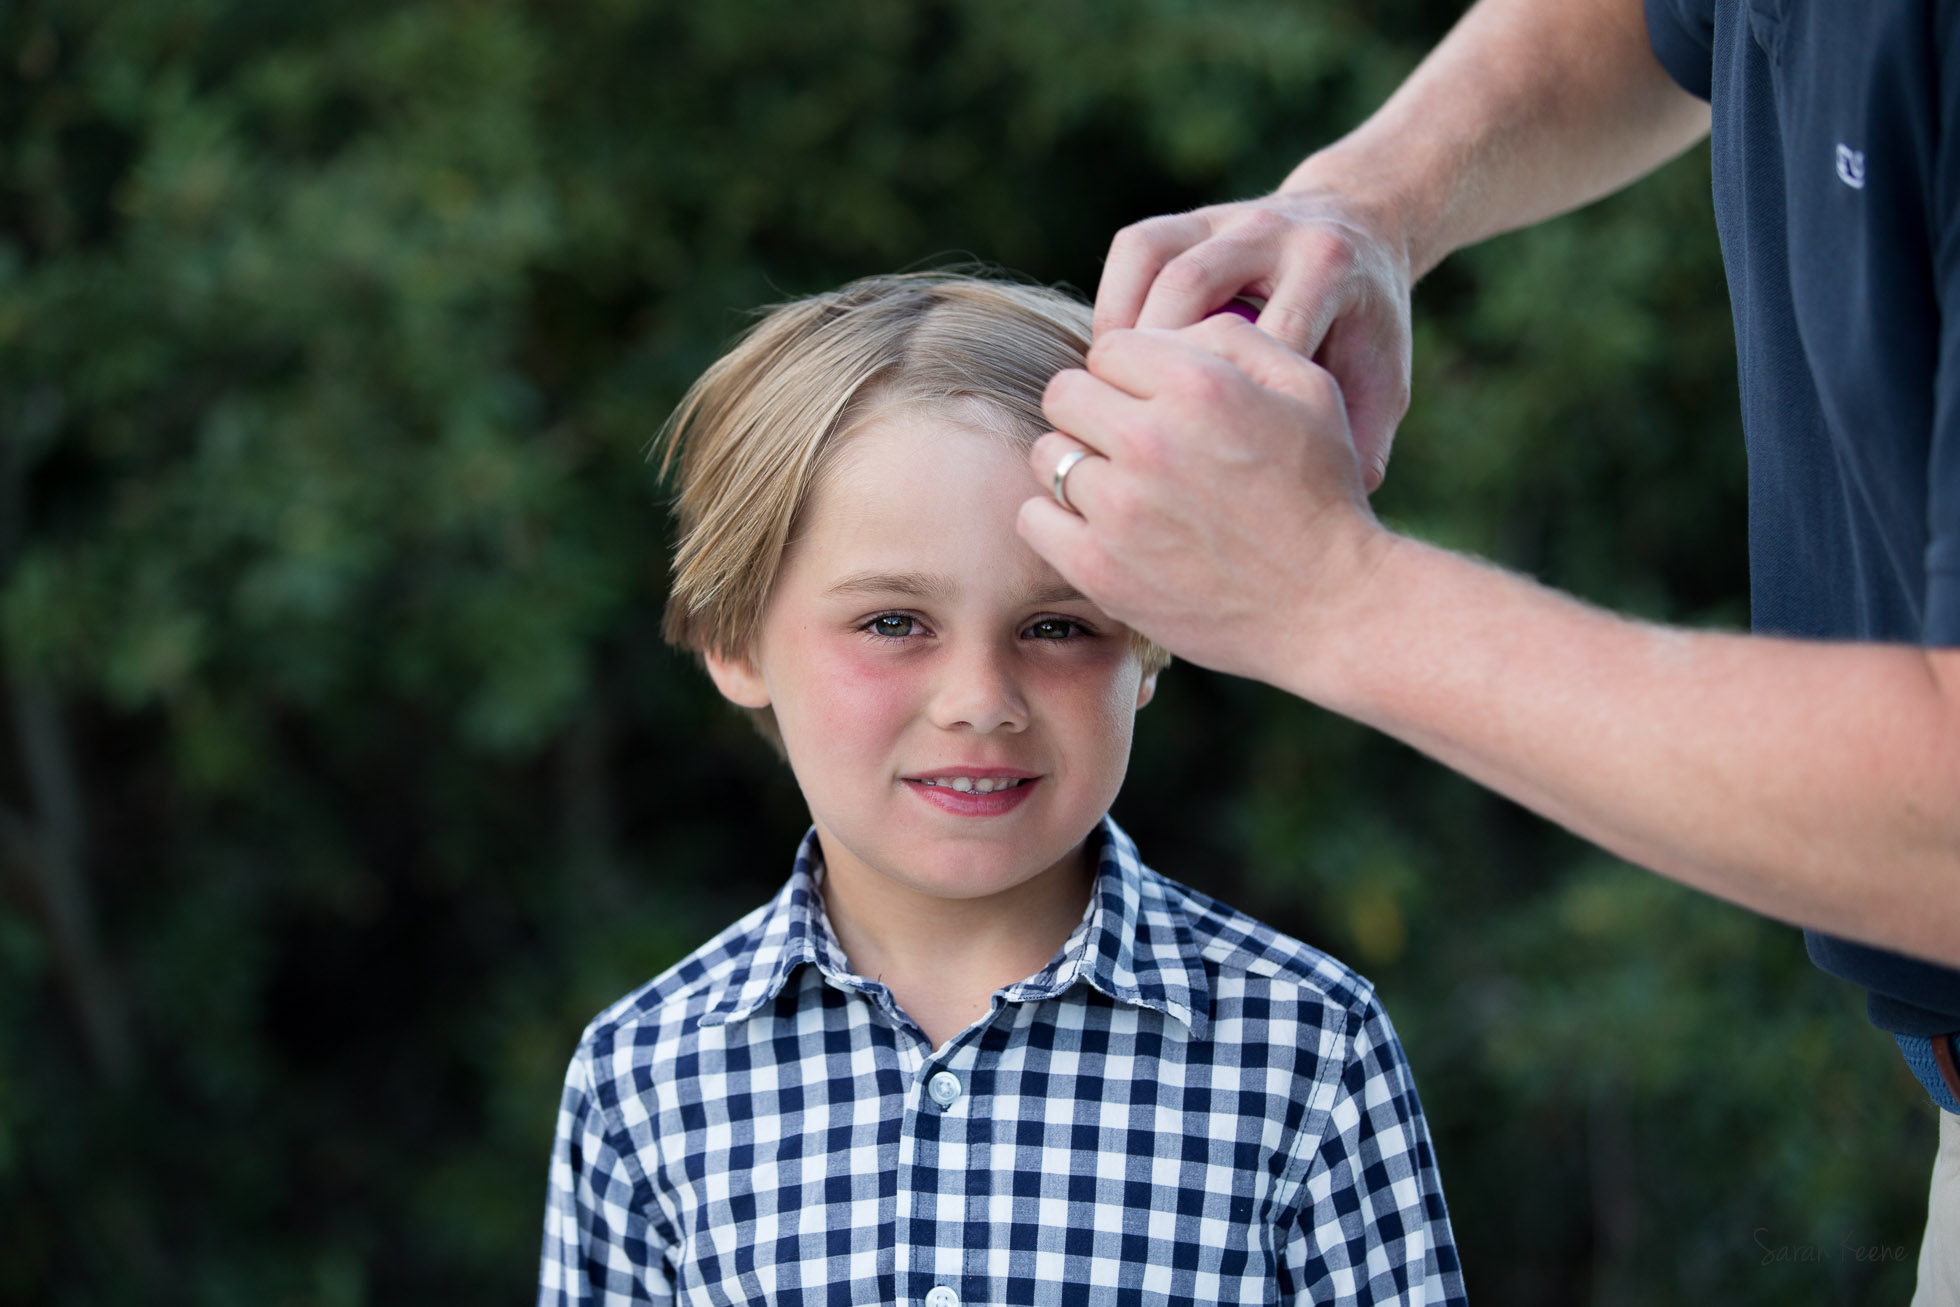 A father lovingly brushing hair before a portrait